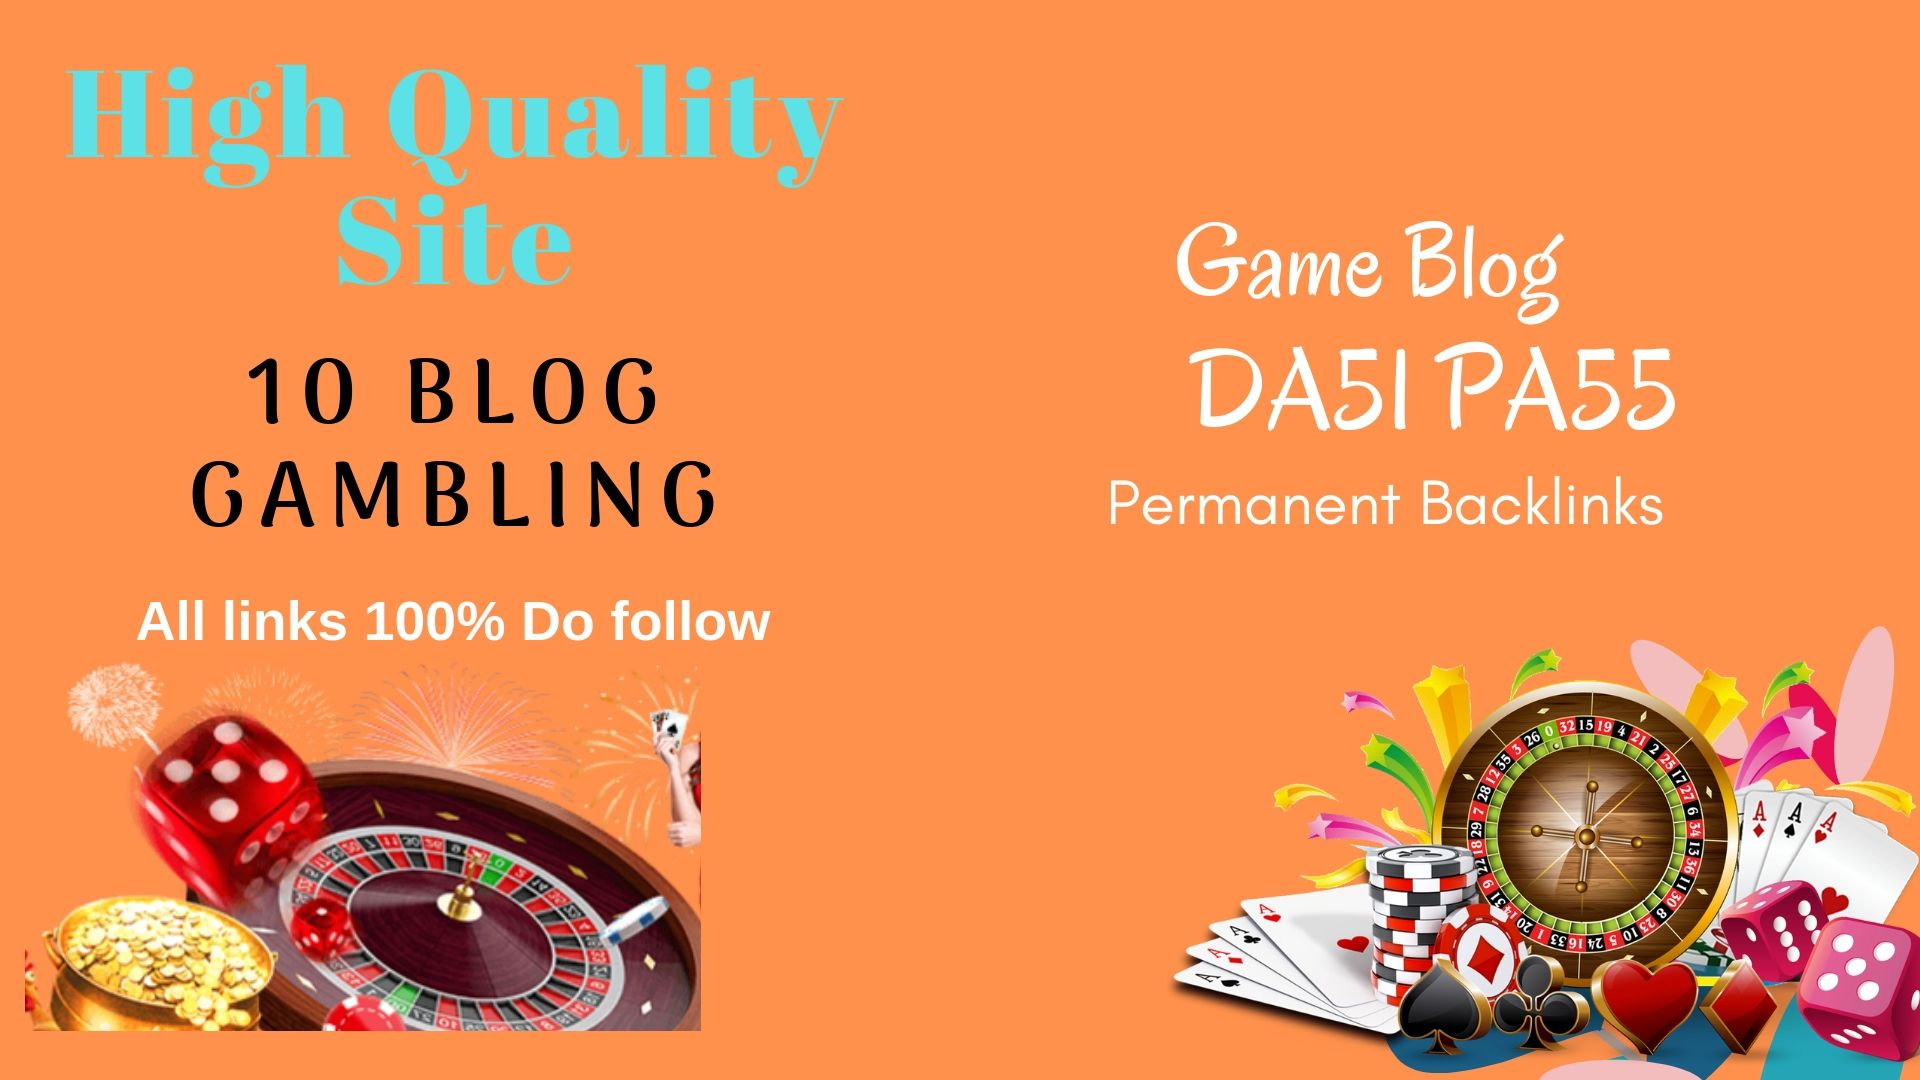 Permanent blogroll 10 Blog Casino GAmbling  DA 51/ PA 55